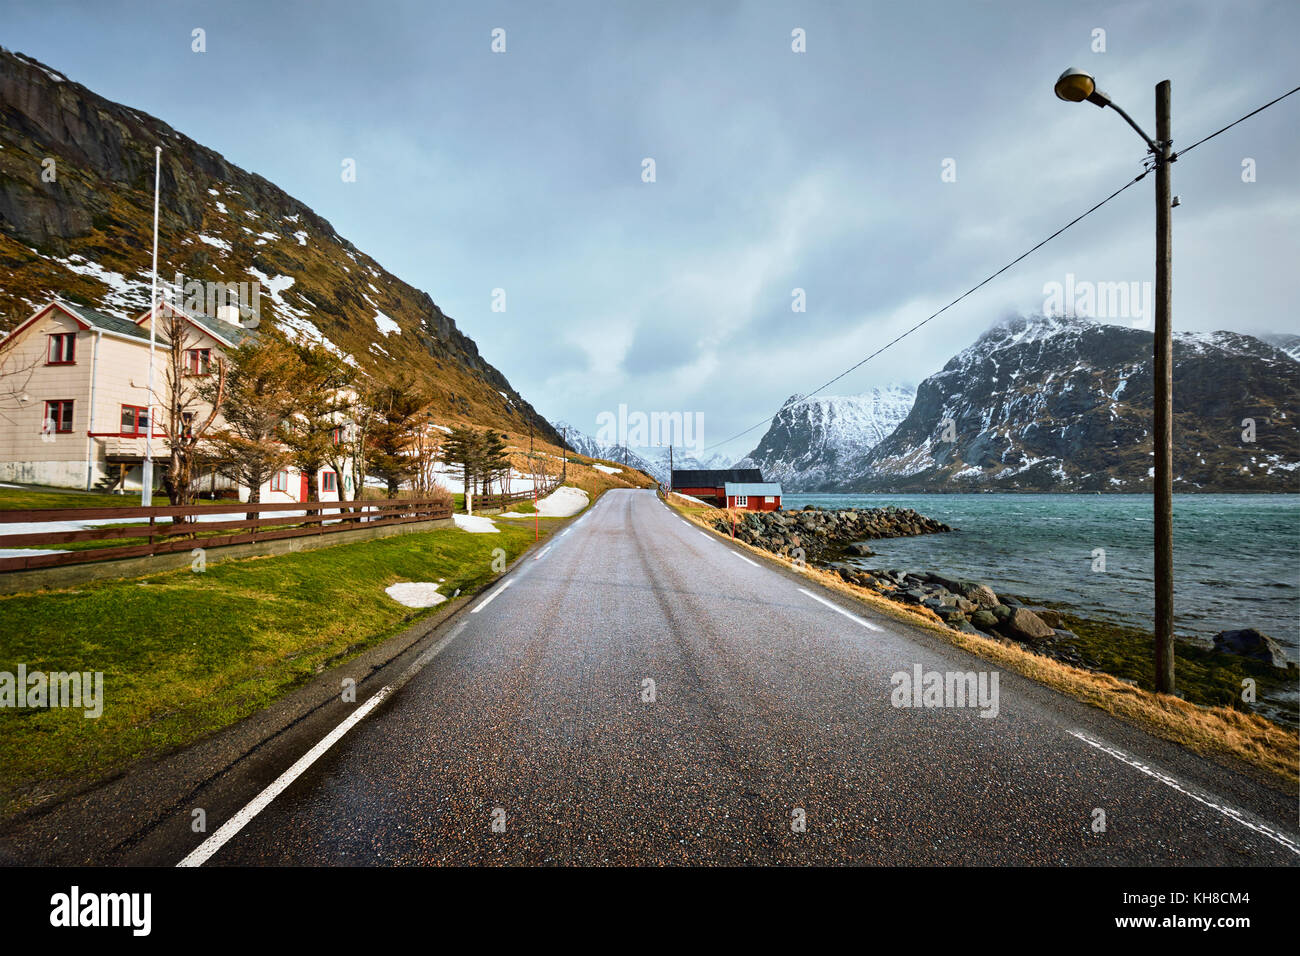 Road in Norway along the fjord - Stock Image